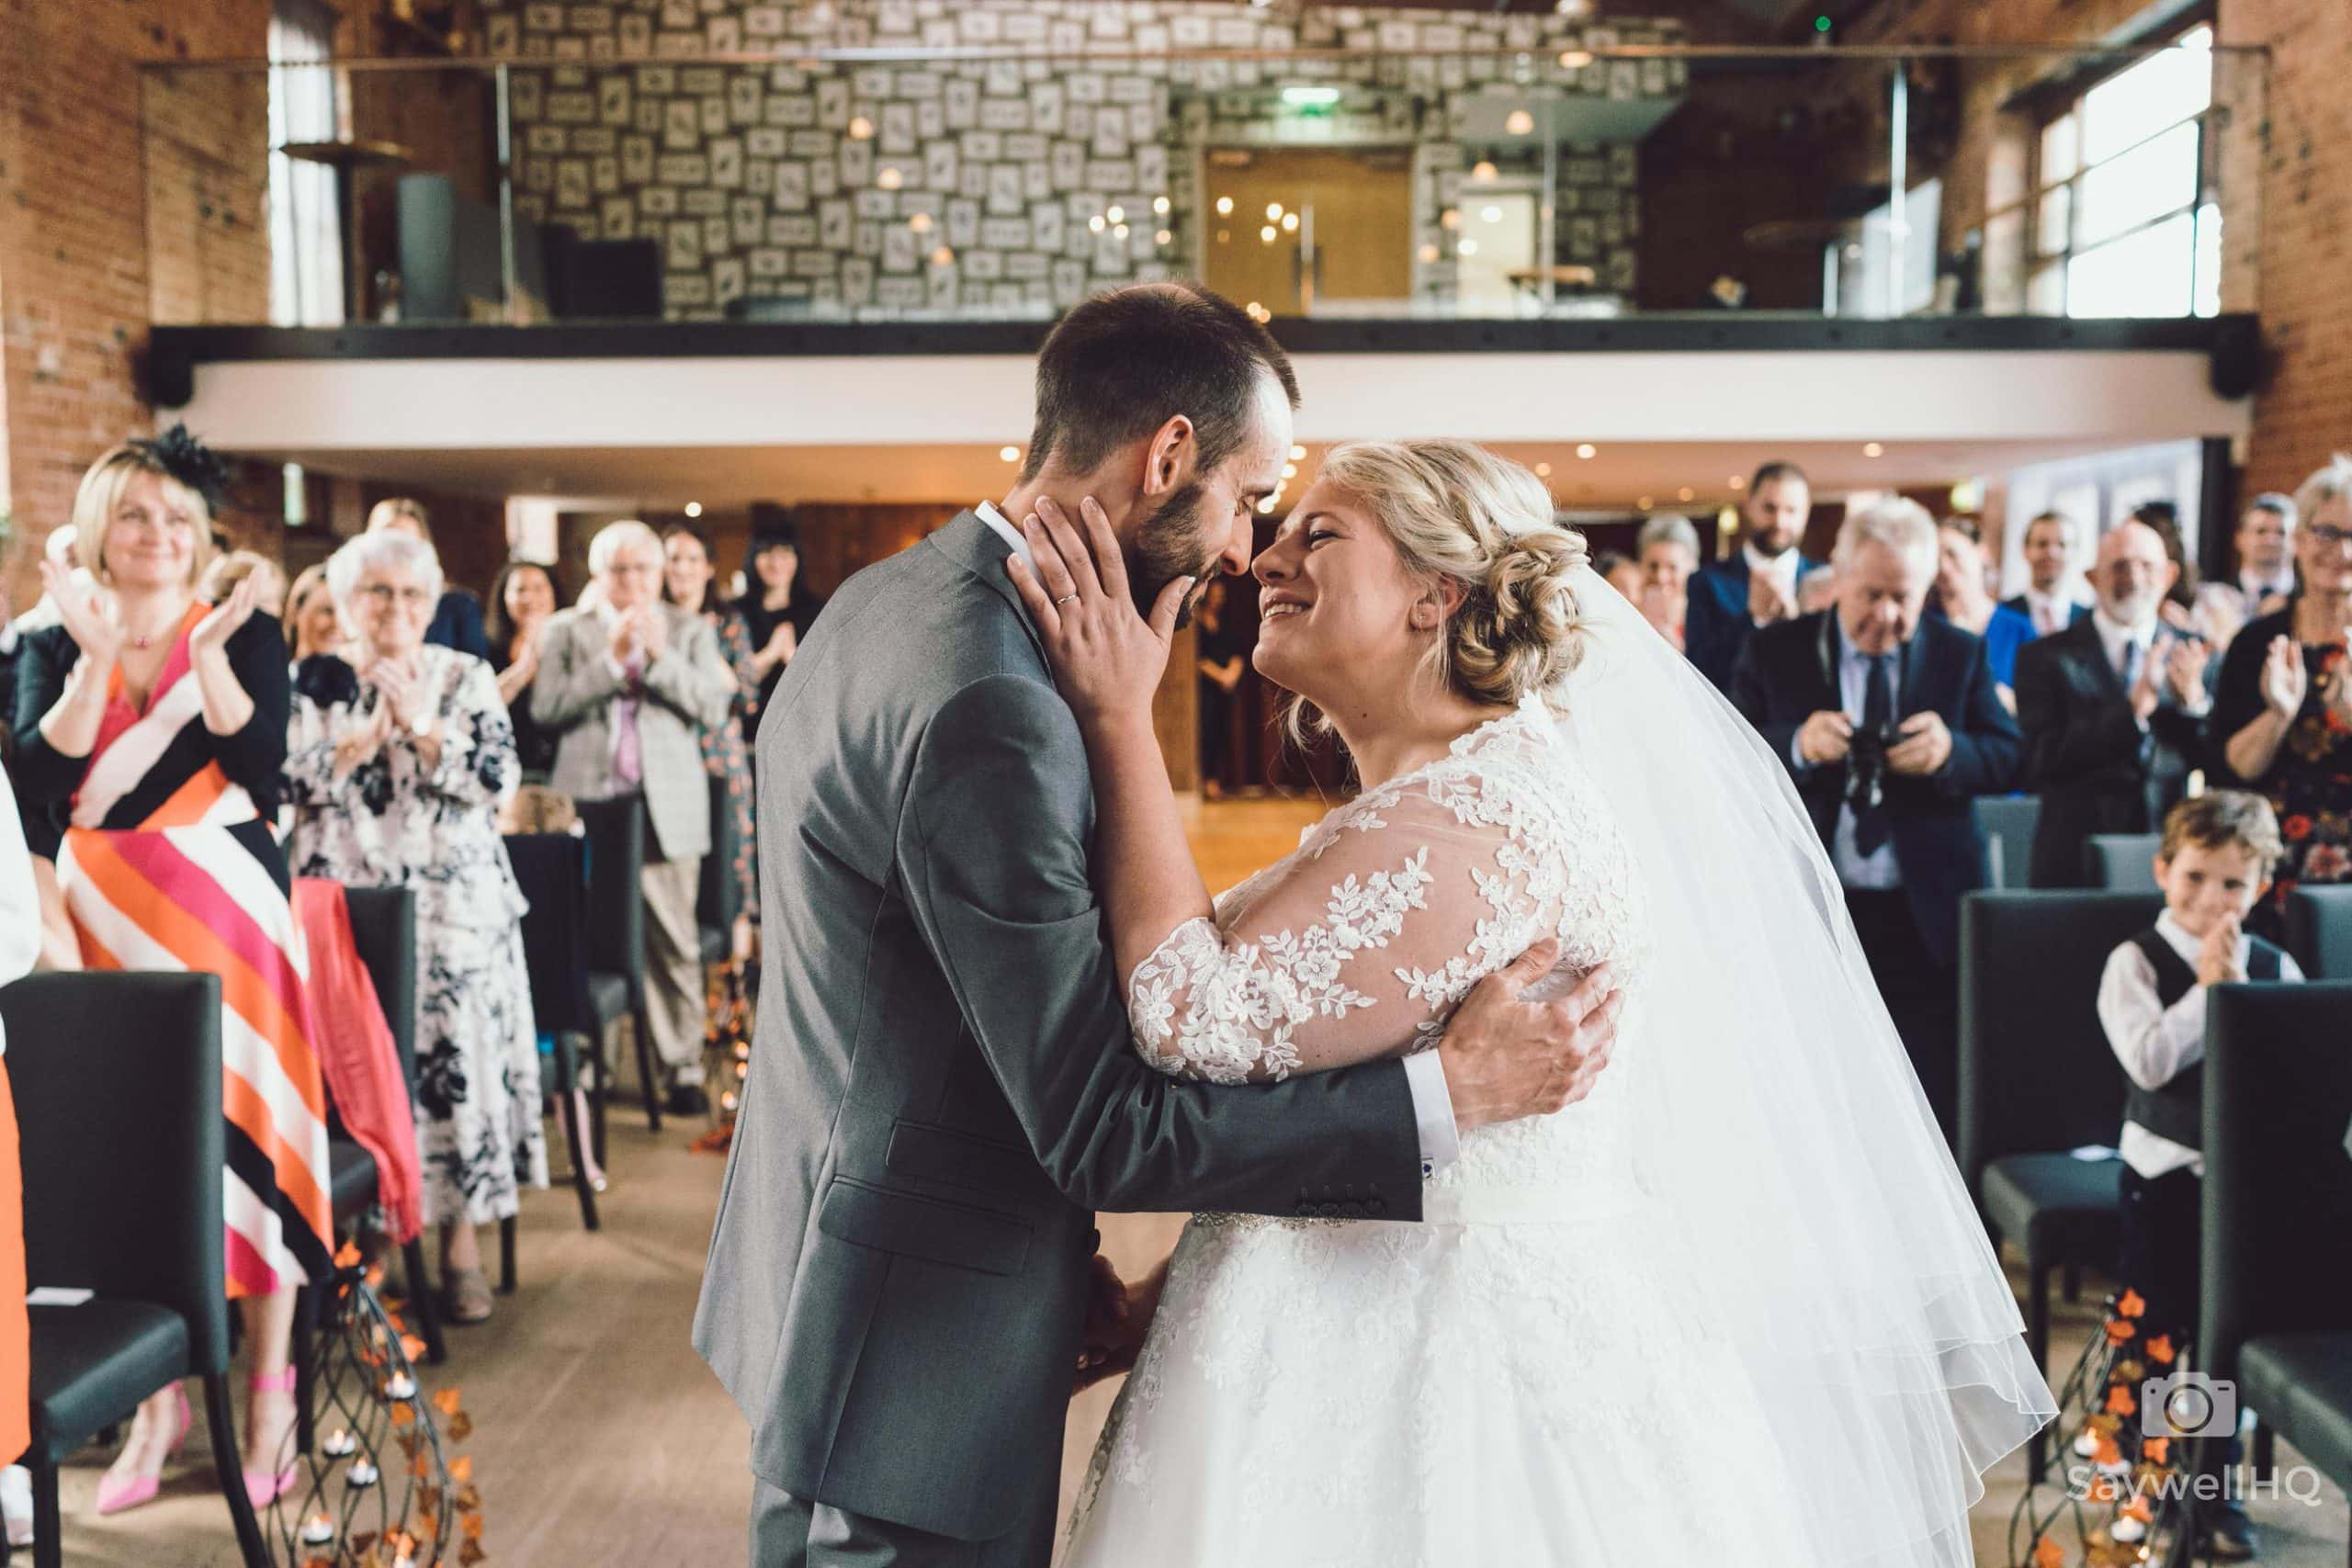 Wedding photography at Carriage Hall in Nottingham + Bride and groom first kiss